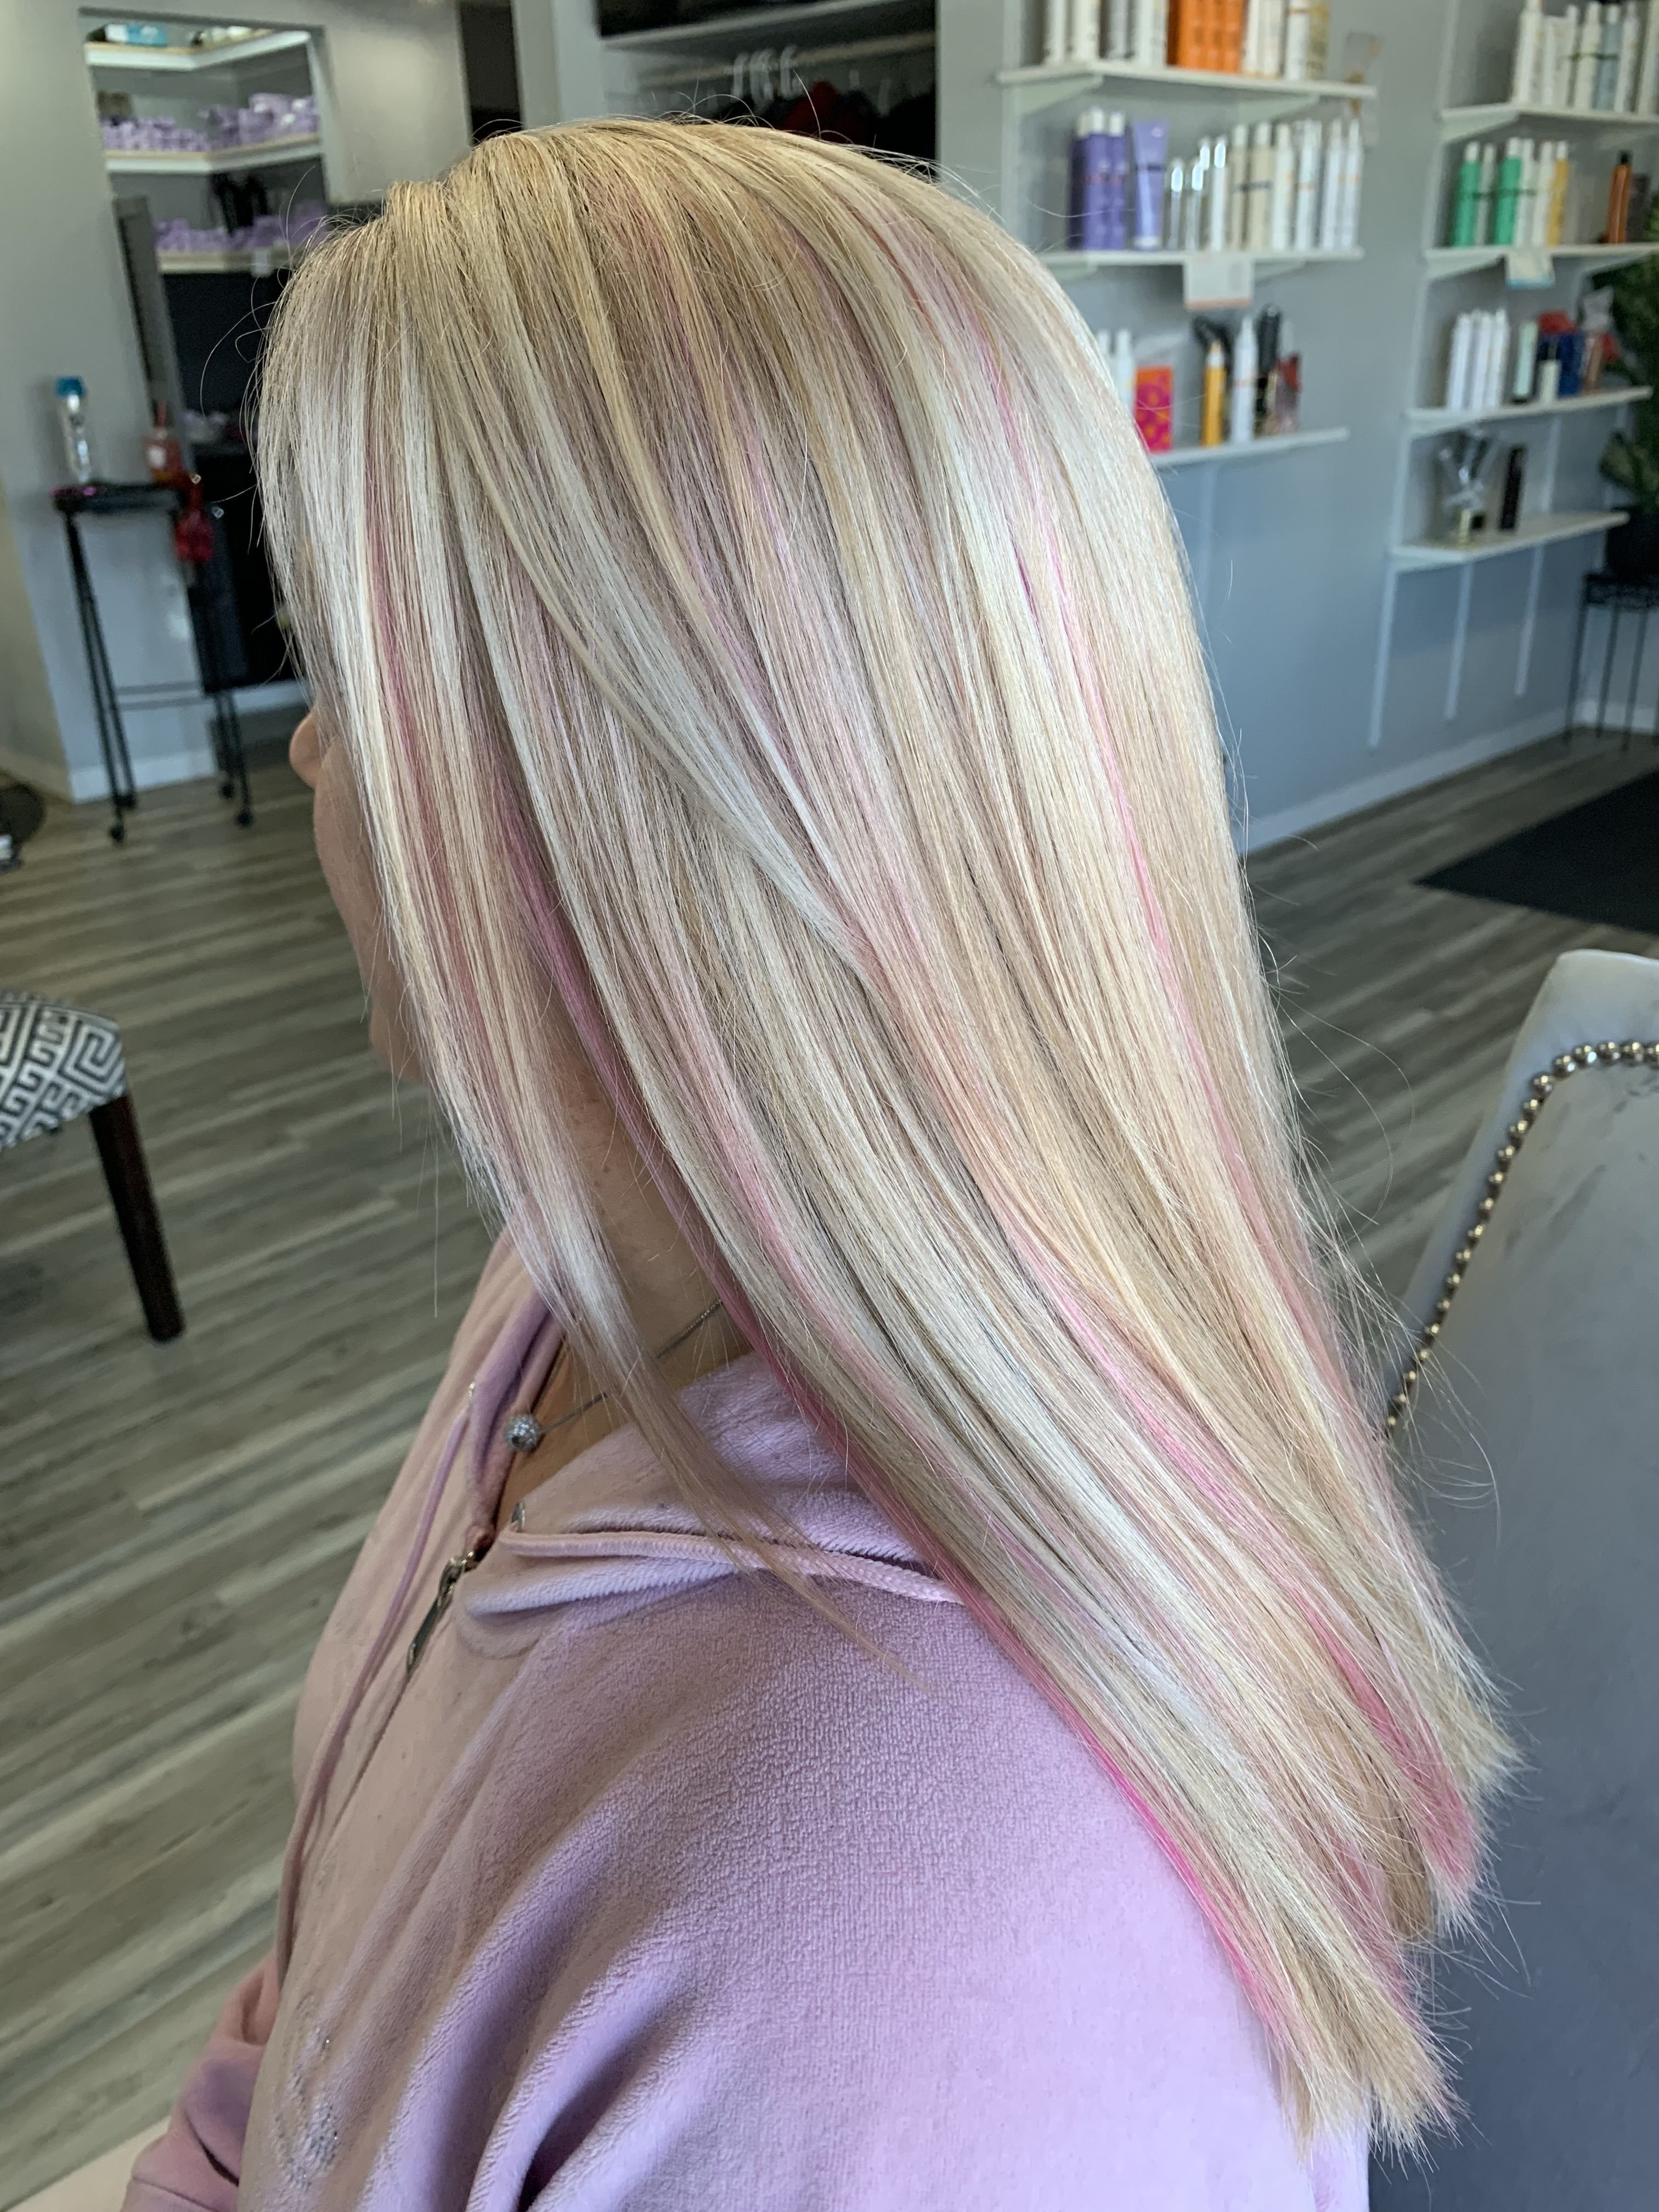 Blonde With Pink Highlights Pink Blonde Hair Blonde Hair With Pink Highlights Pink Hair Highlights